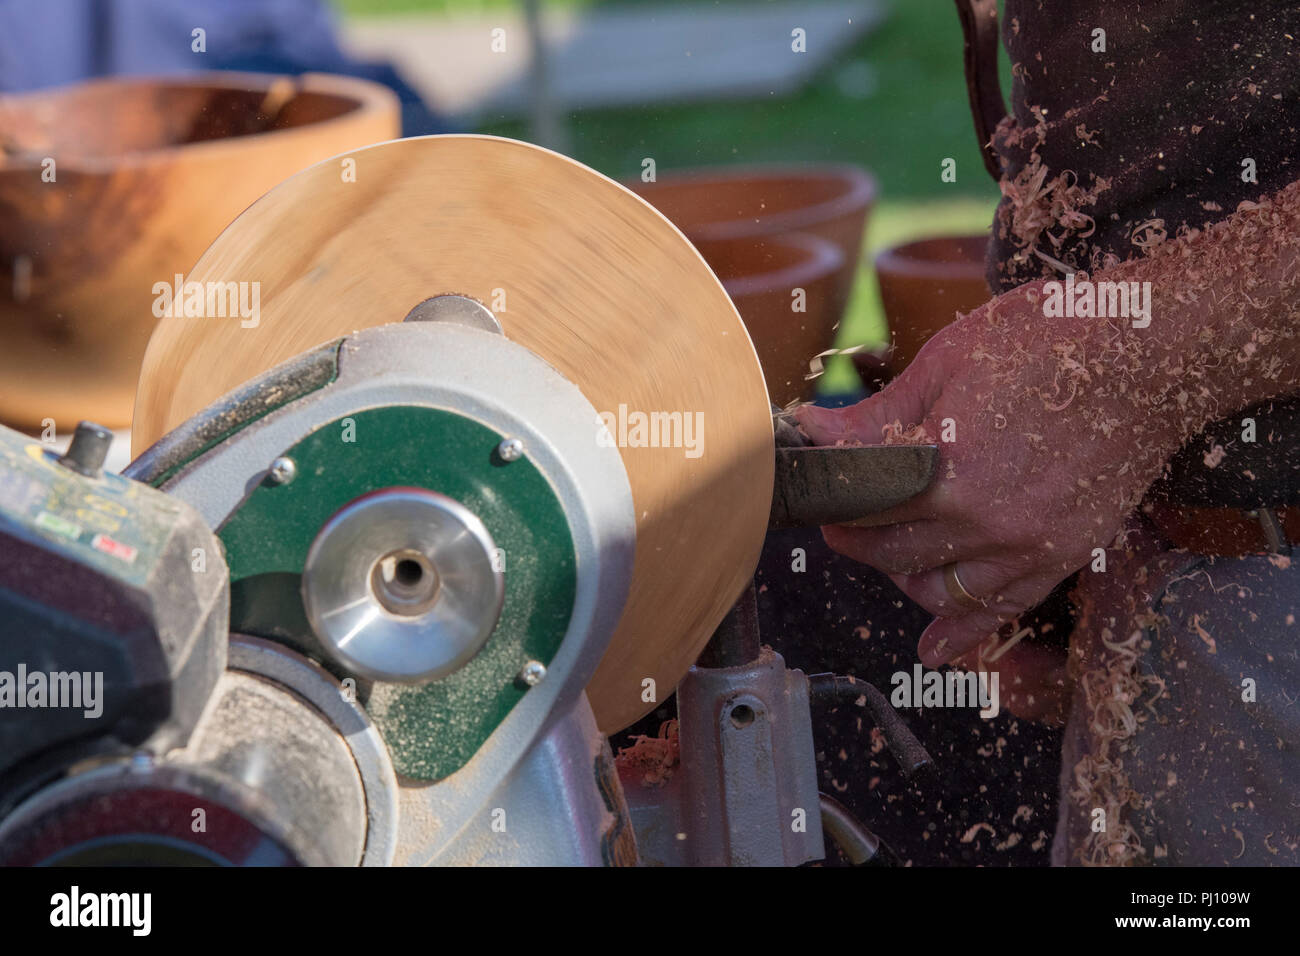 a craftsman wood turning using a lathe to shape wood in a workshop. - Stock Image